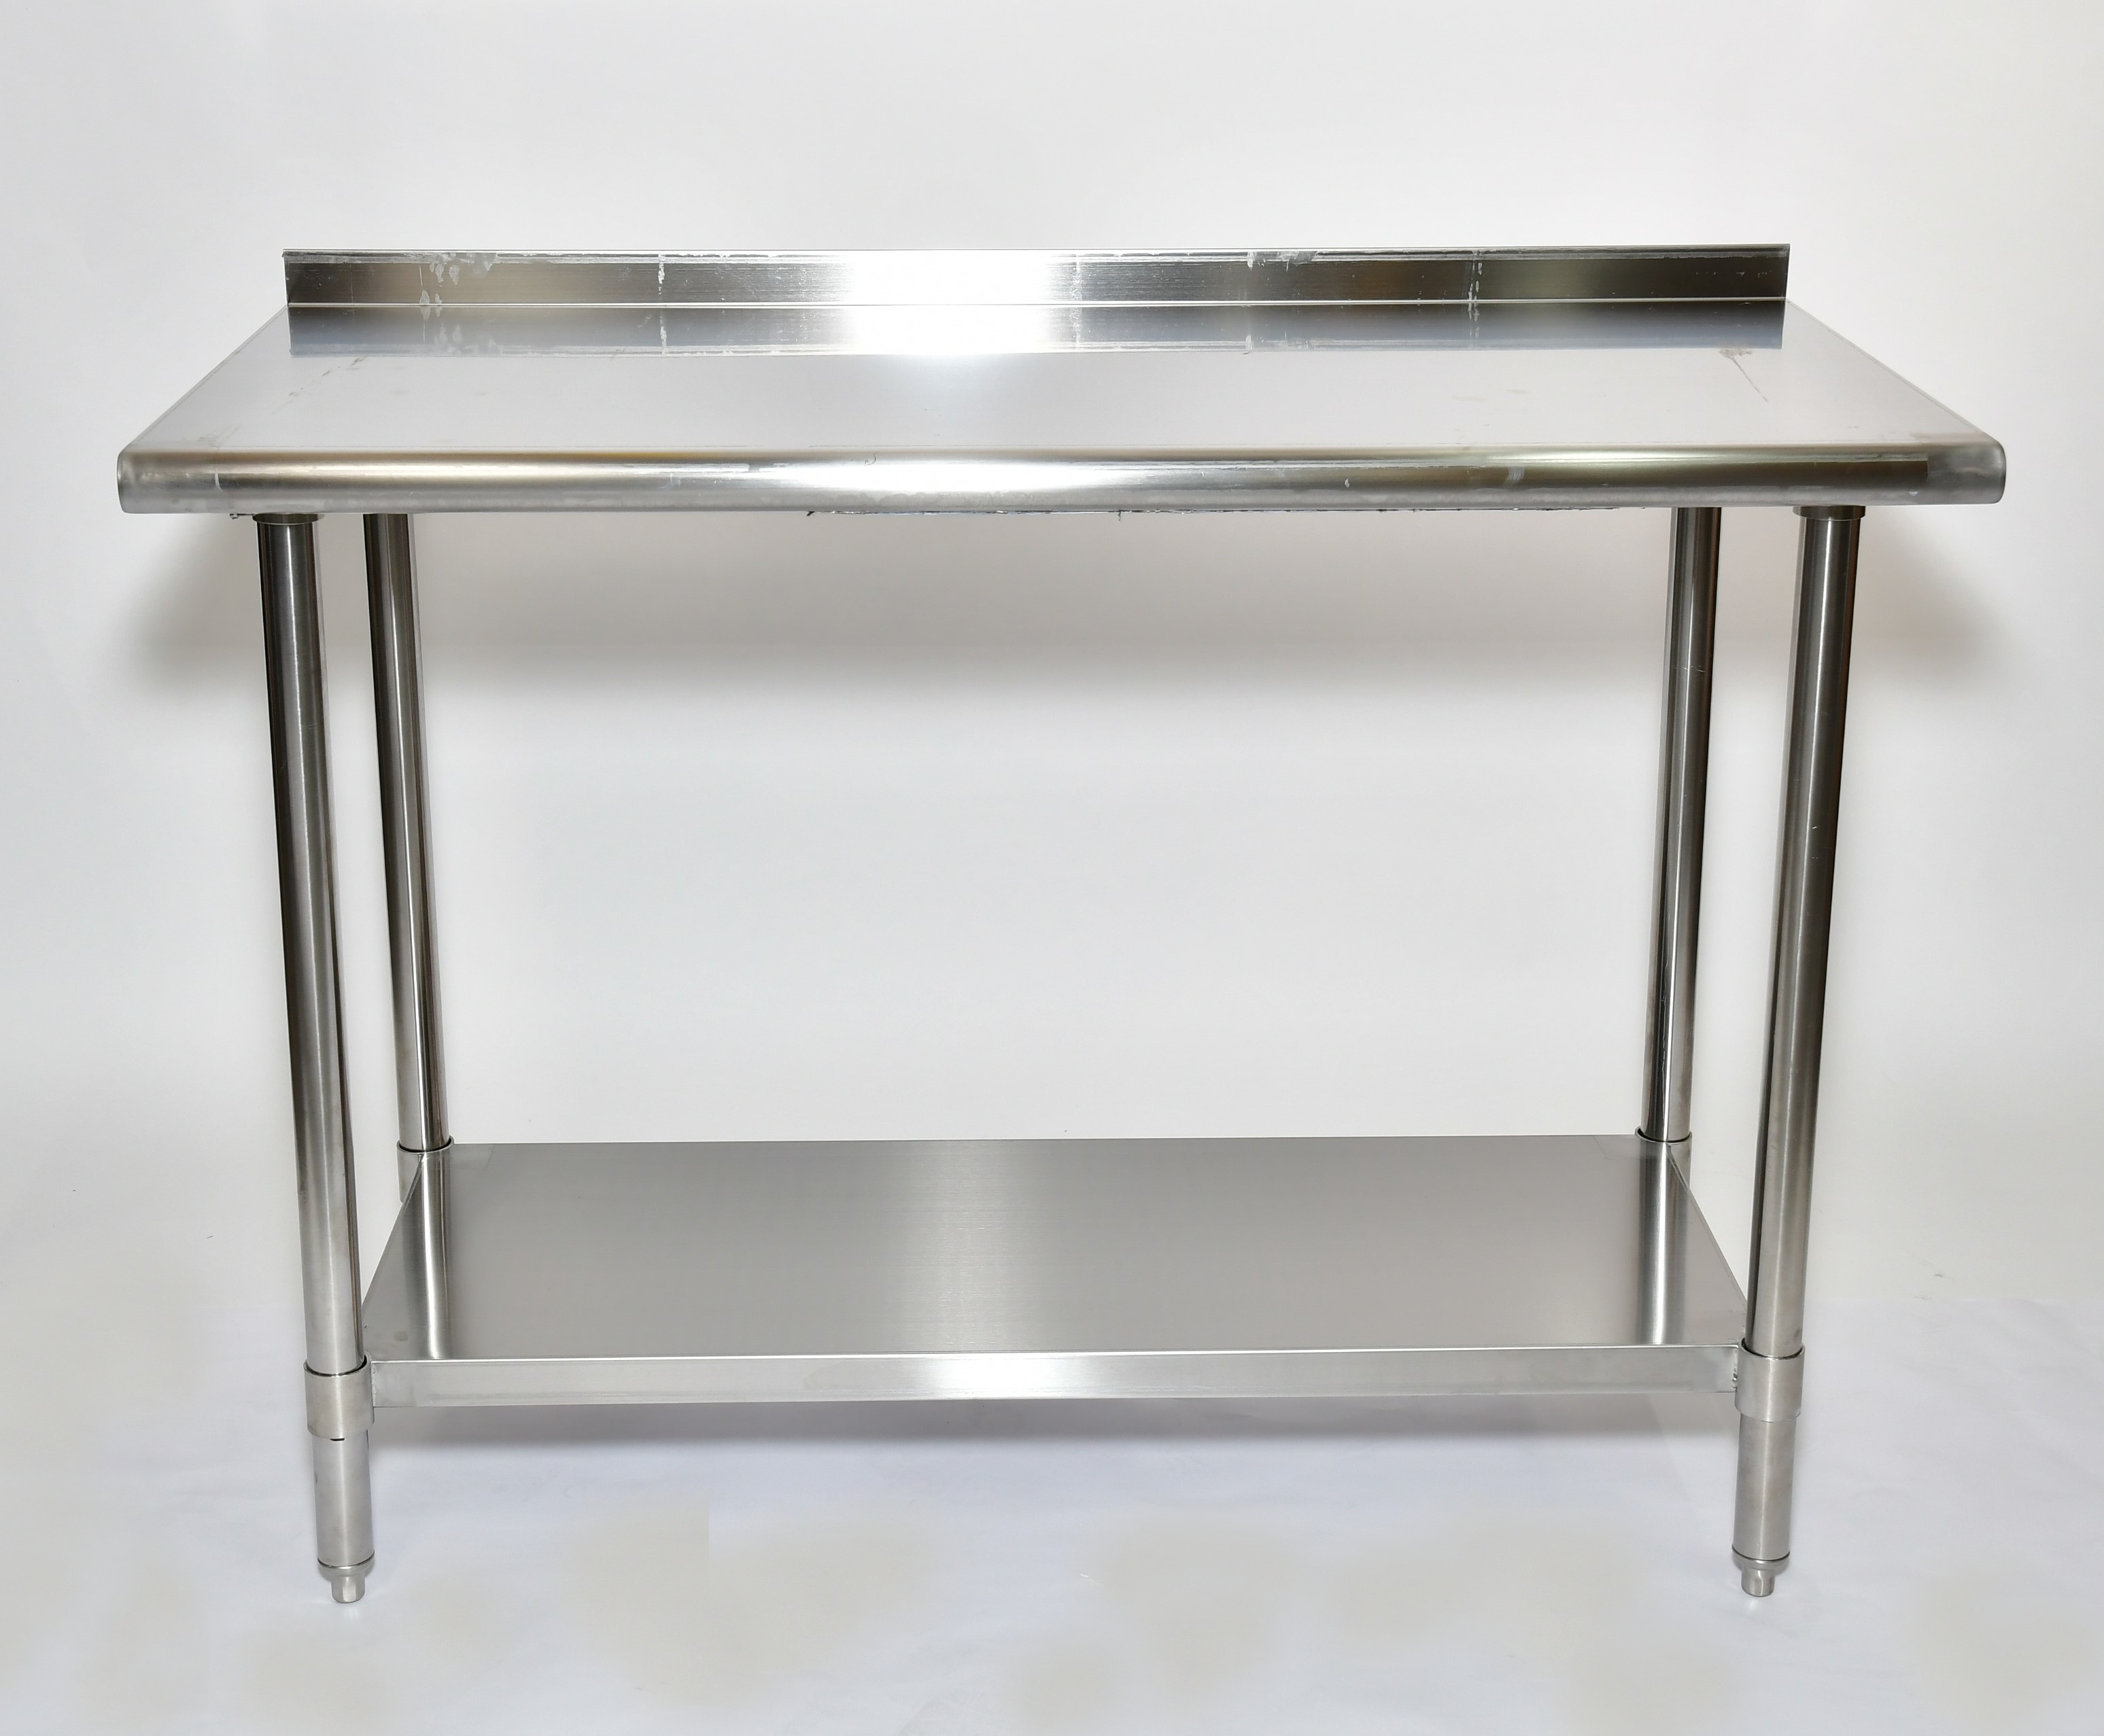 "Iron Guard-Work Table All SS 30 X 30 with 2"" Back Splash,  430-16GA with 18GA Undershelf (SKIWT3030EBS) 